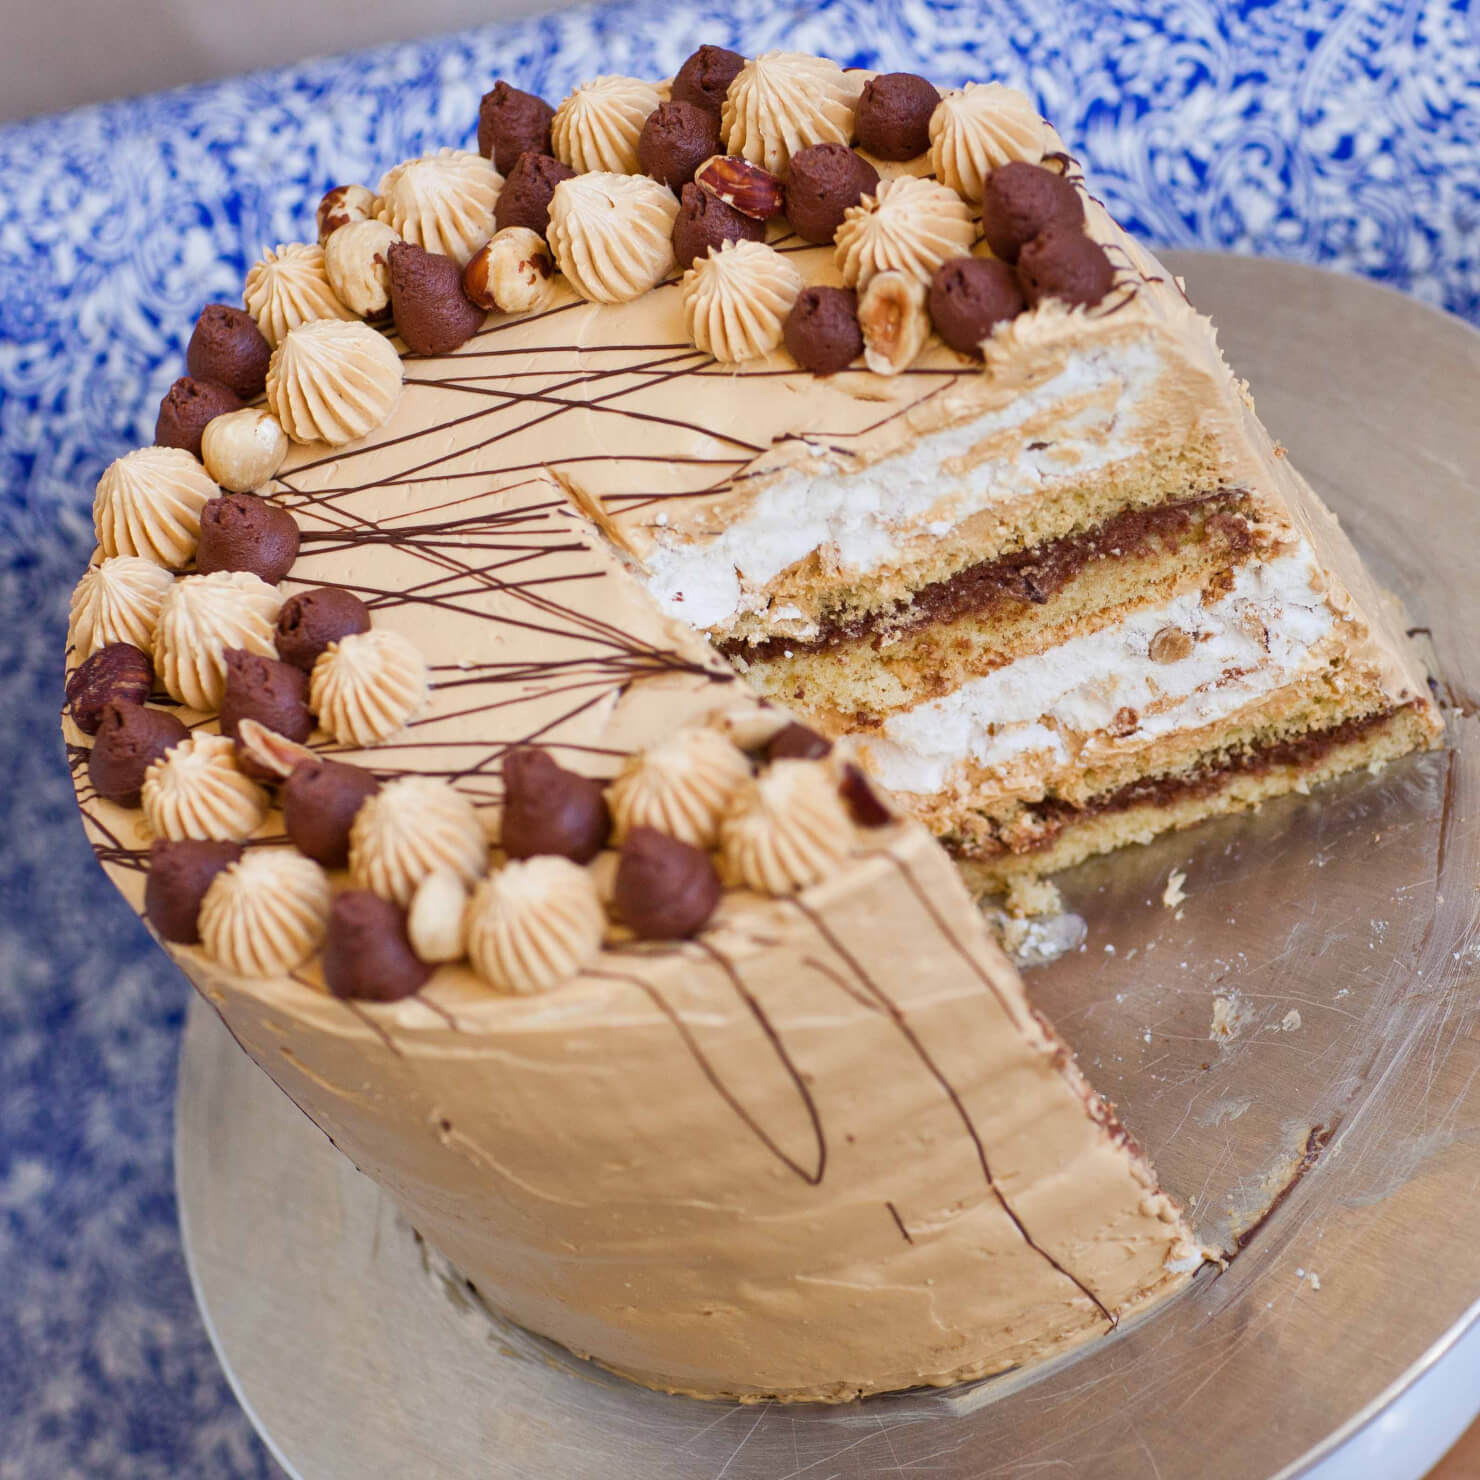 Sponge And Meringue Layer Cake